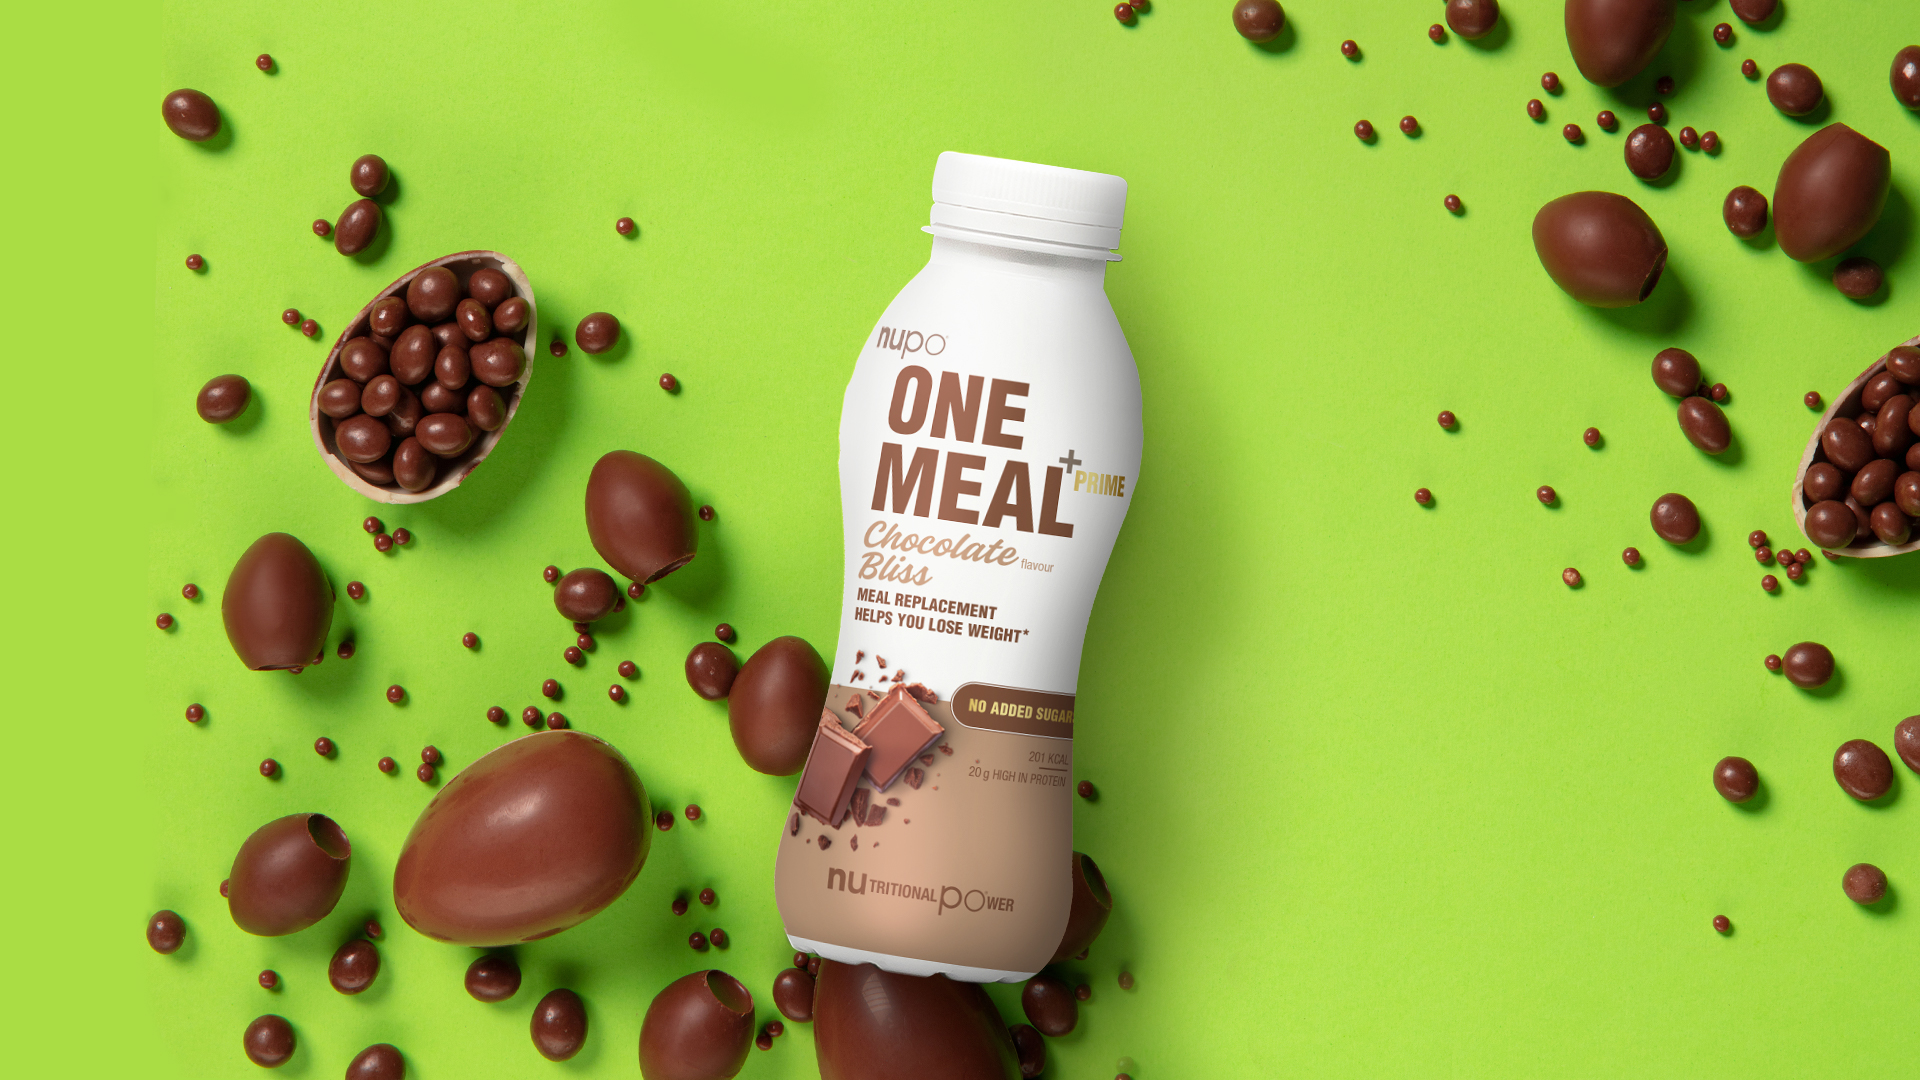 one-meal-prime-chocolate-shake-for-weight-loss-meal-replacement